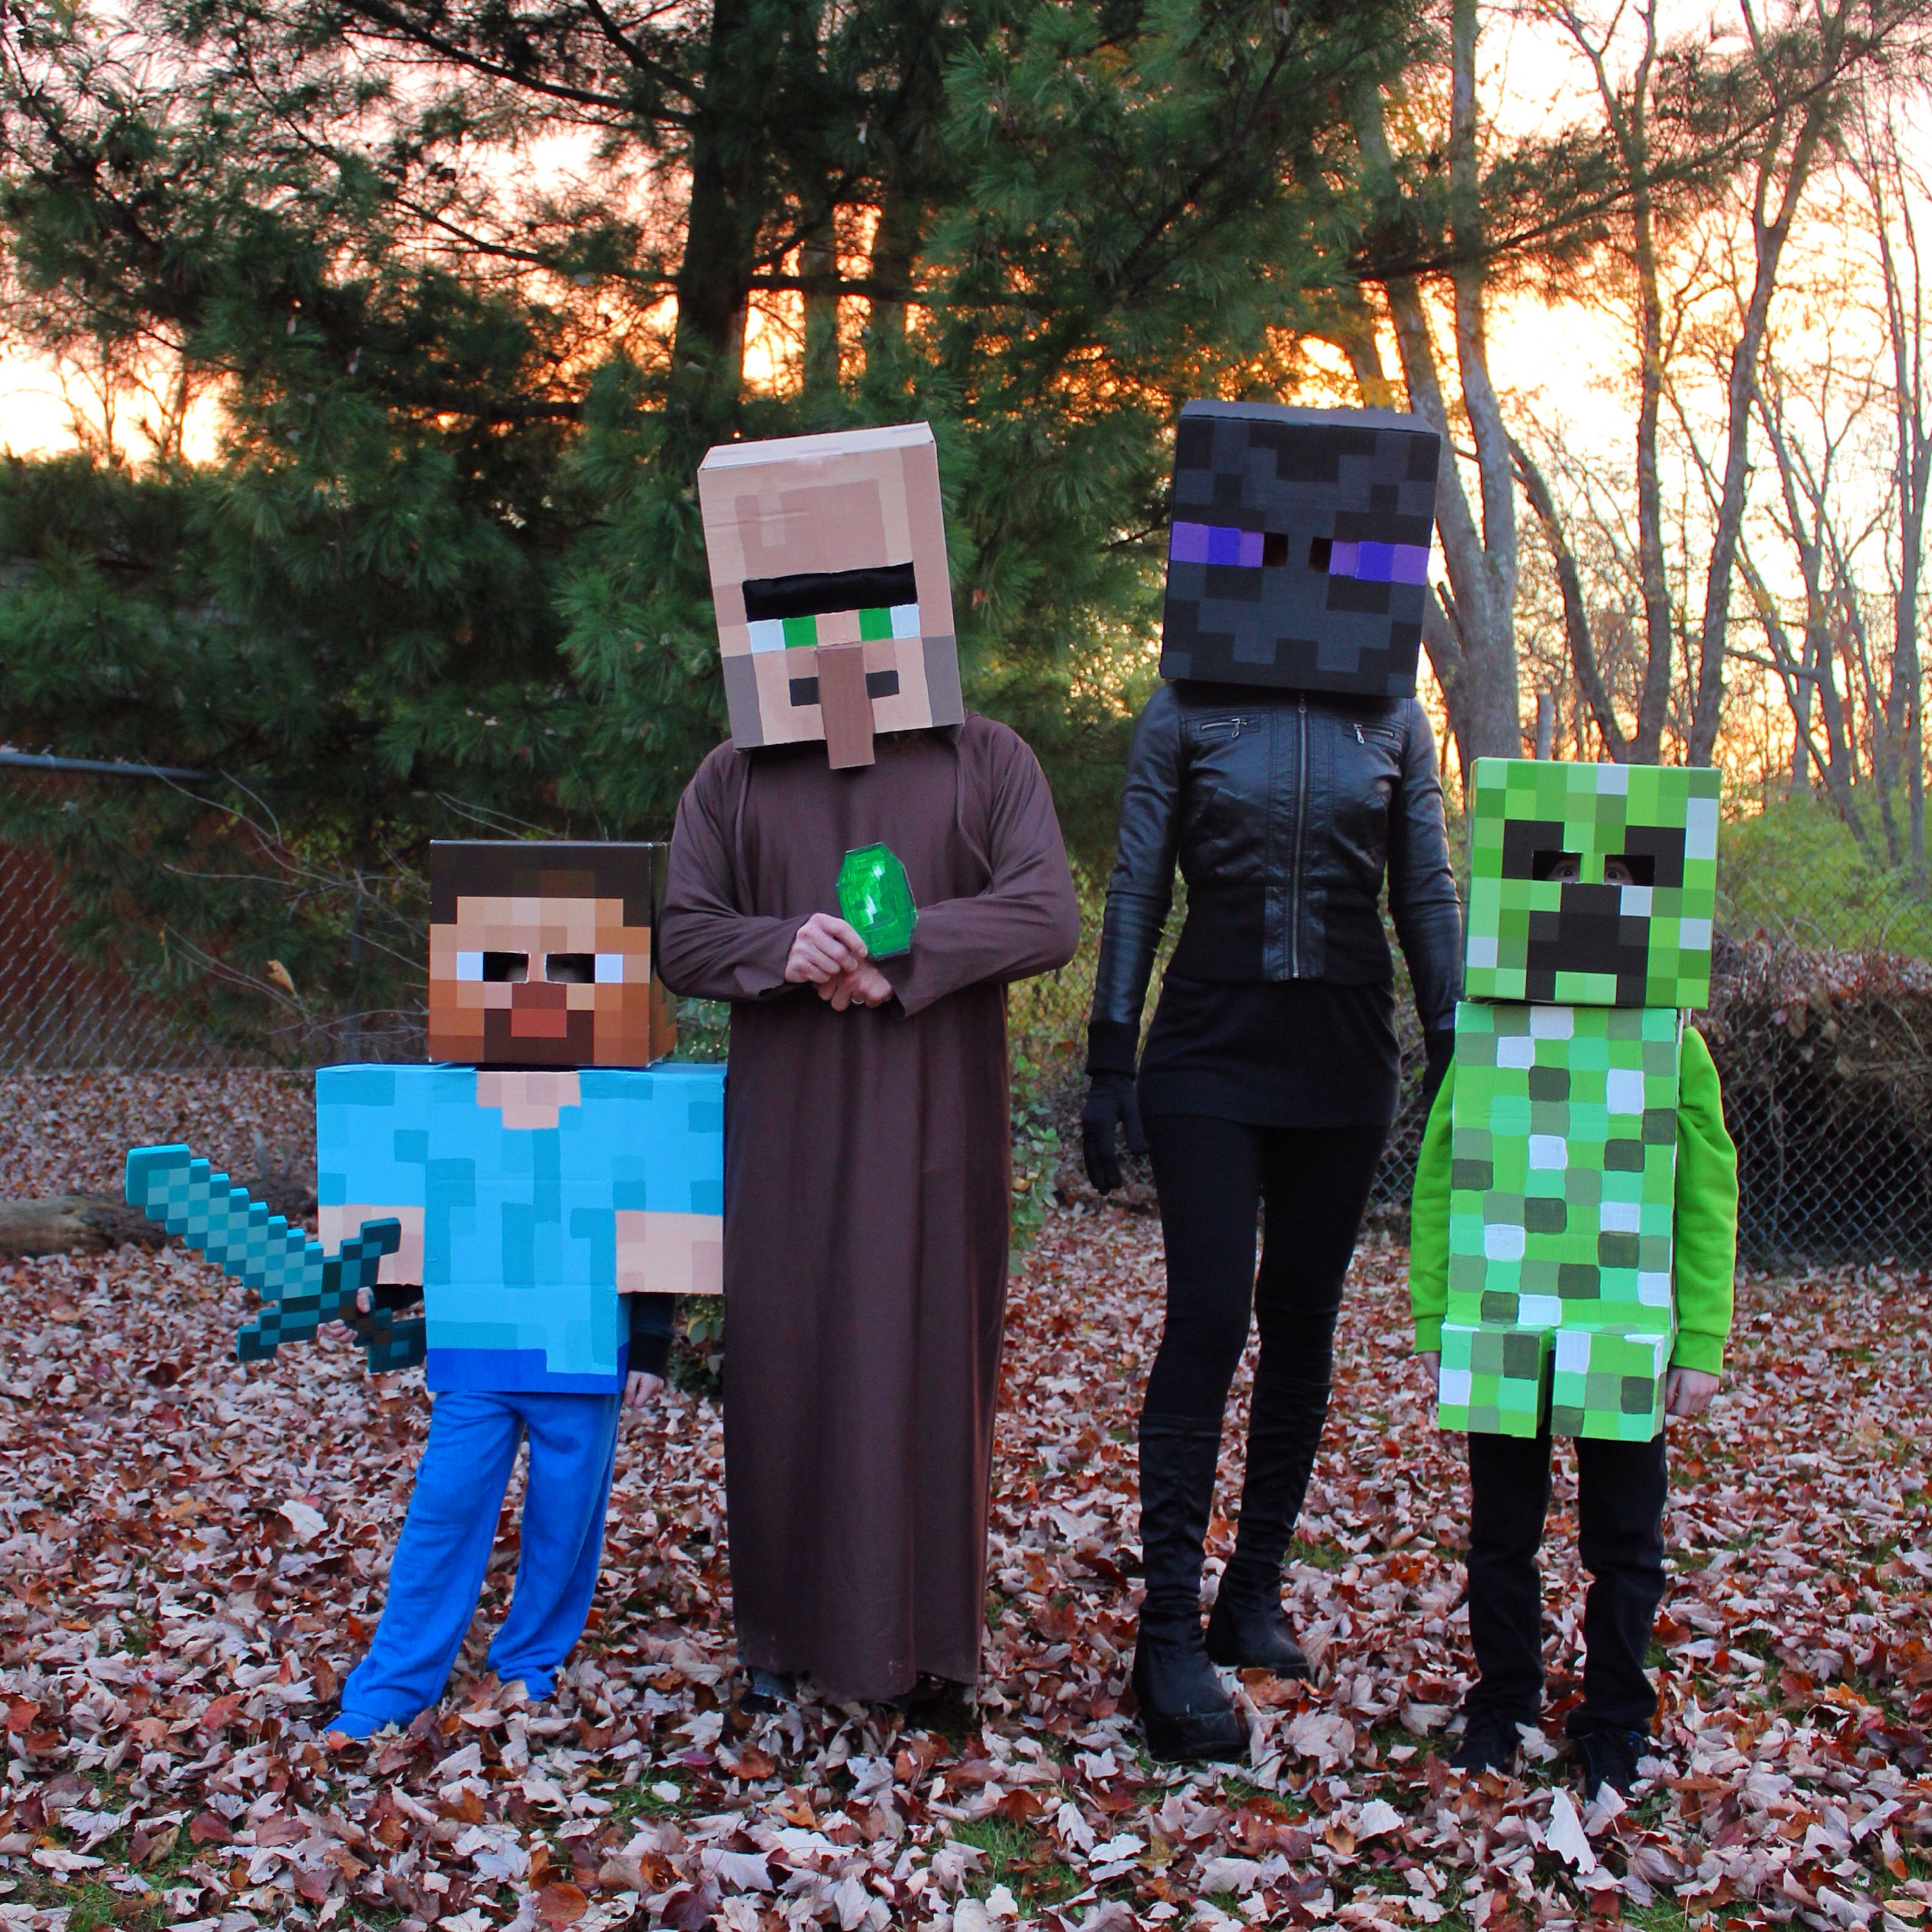 Steve Villager Enderman and Creeper! Just a picture. & Minecraft Family Halloween Costume | Halloween | Pinterest ...